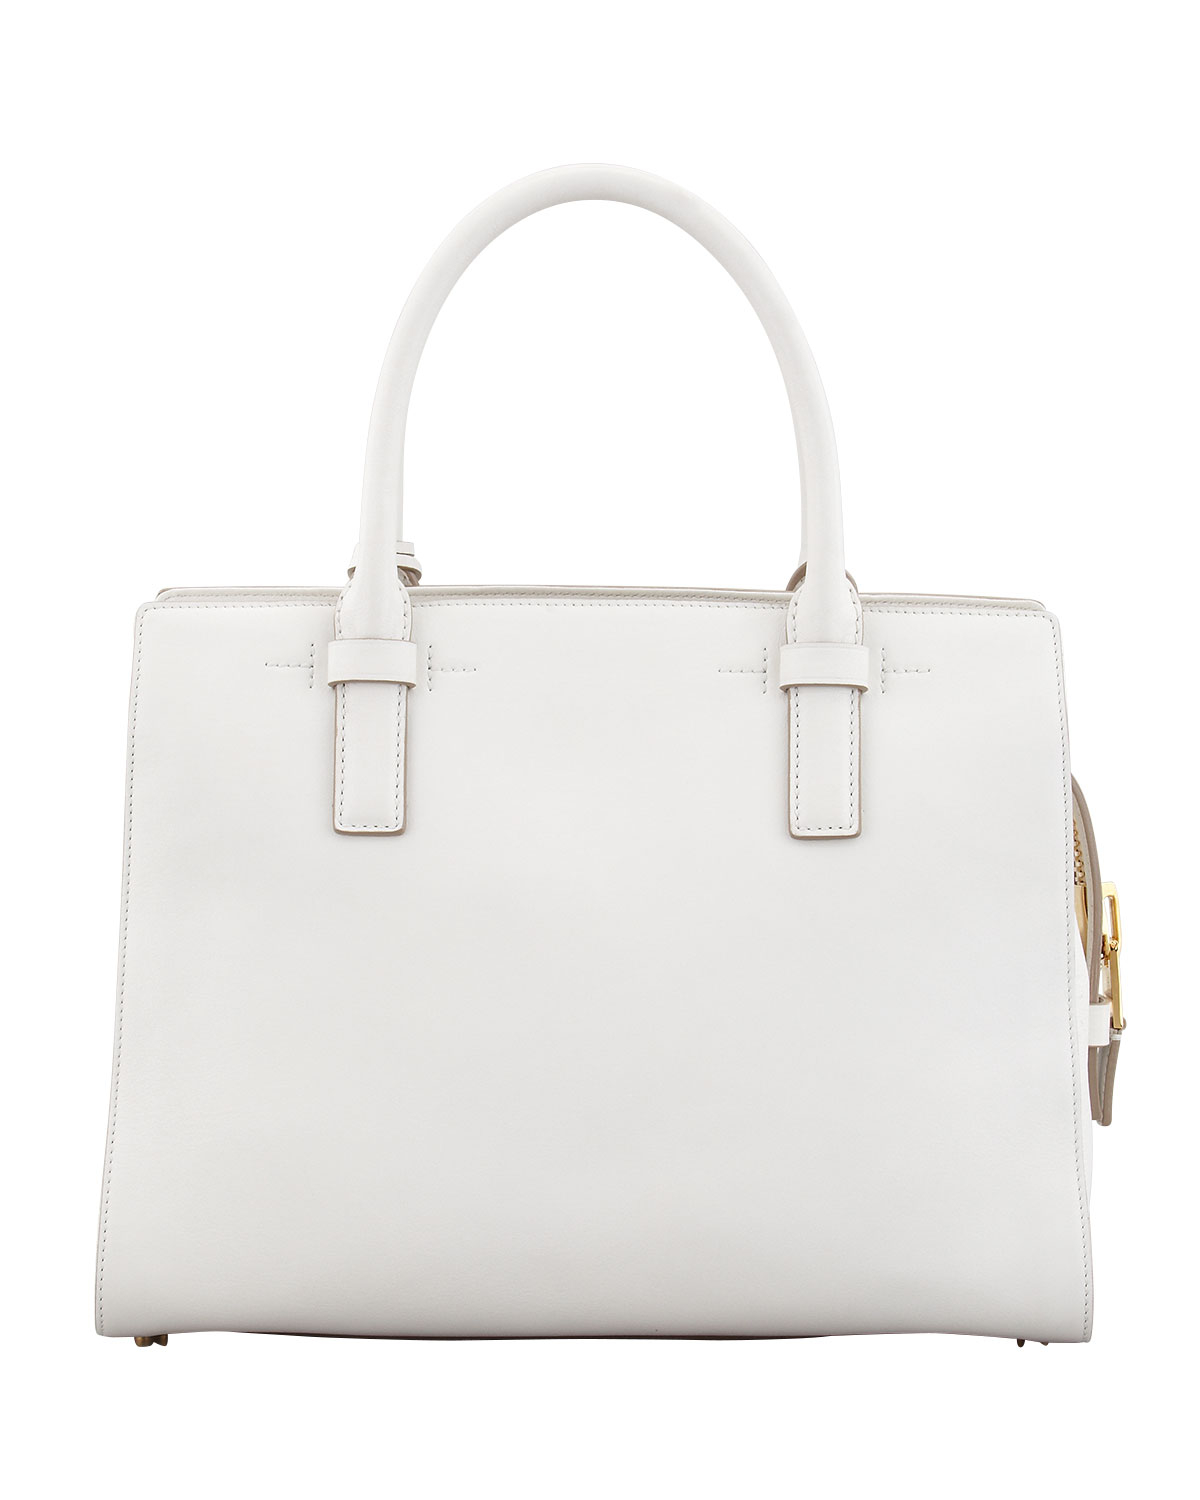 Tom ford Charlotte Small Leather Tote Bag in White | Lyst